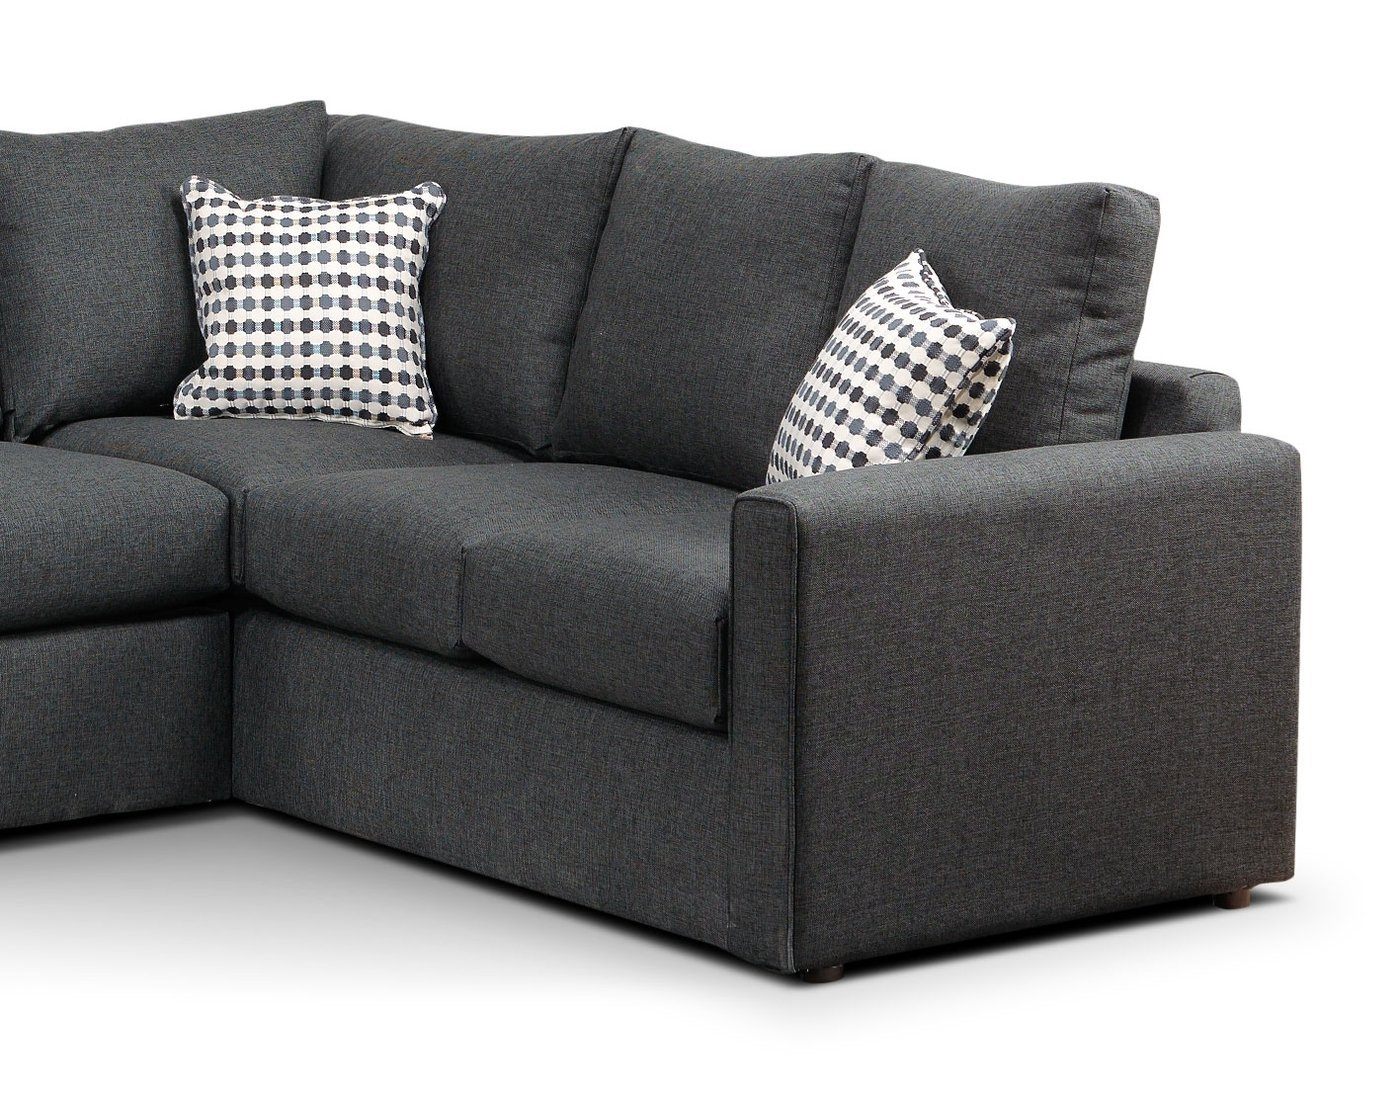 Sofa Sectional | Nokomis Charcoal Laf Sectional For Aquarius Light Grey 2 Piece Sectionals With Laf Chaise (Image 23 of 25)